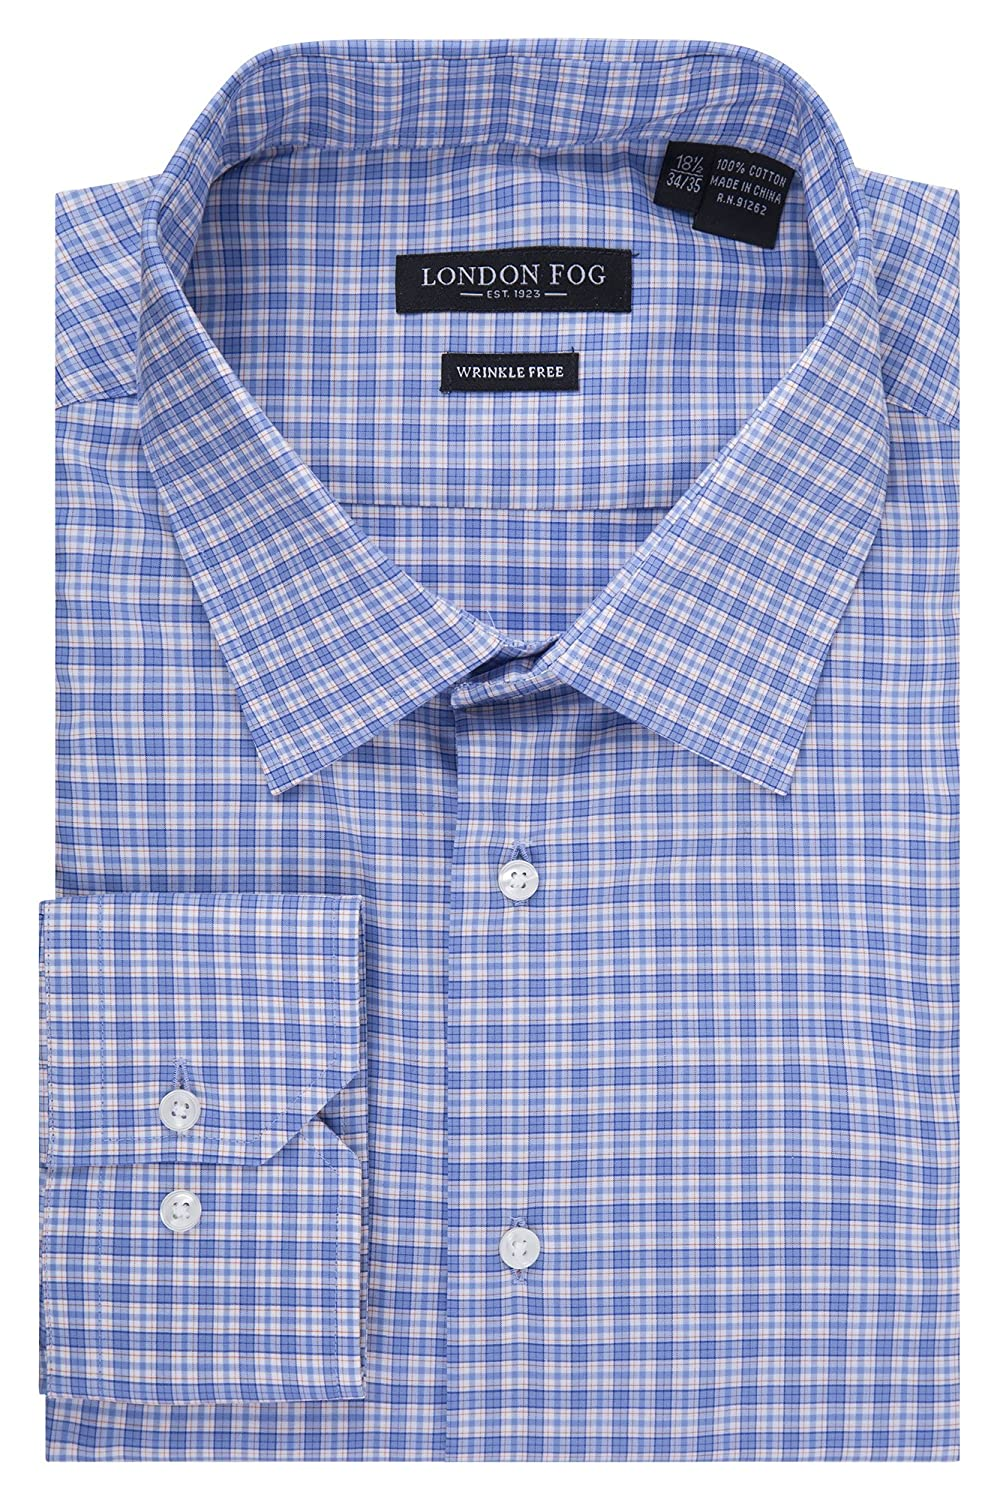 Symbol Of The Brand Slim Fit Blue Plaid Herringbone Spread Collar Wrinkle Freee Cotton Dress Shirt Clothing, Shoes, Accessories Dress Shirts